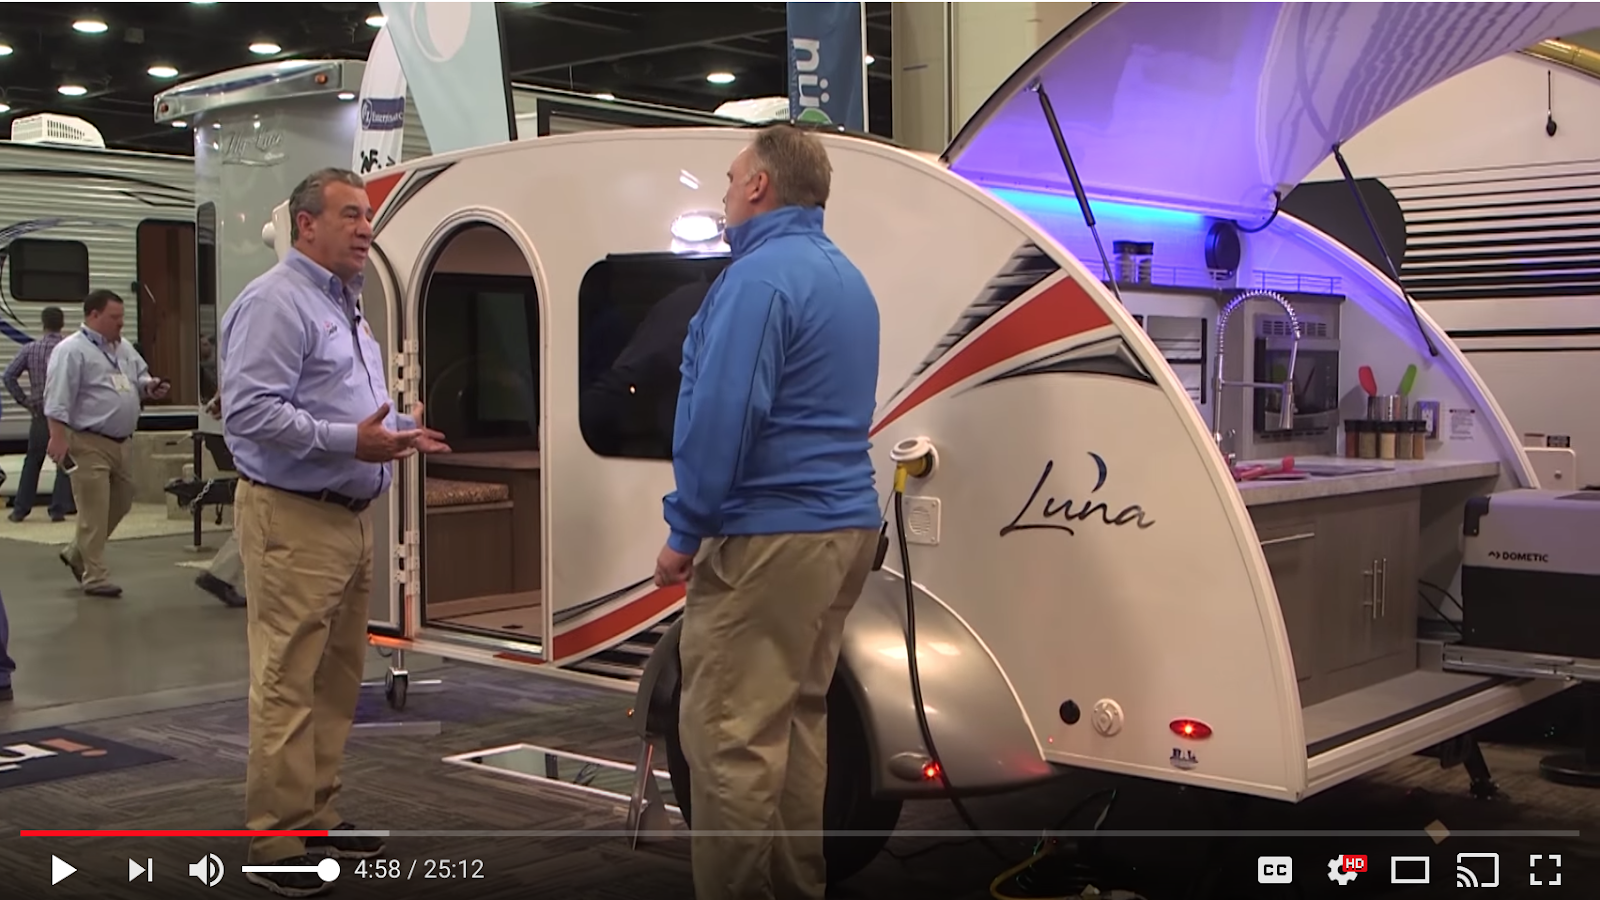 Rollin' on TV: inTech Luna, 2 Gals & A Dog, and Driving Tips by RV on